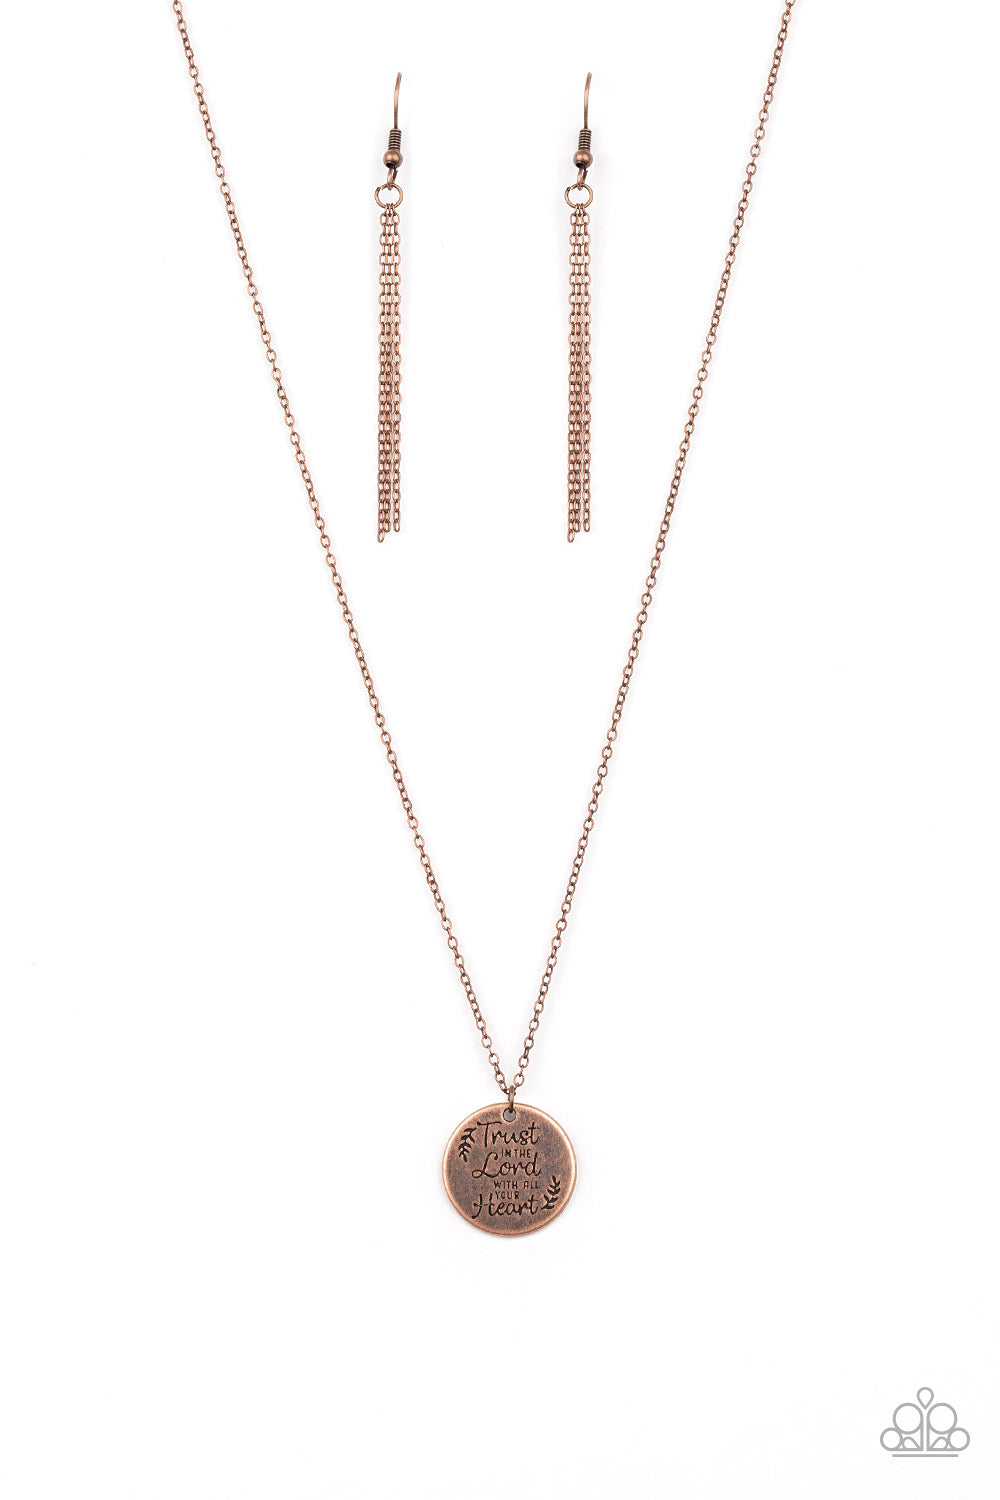 five-dollar-jewelry-all-you-need-is-trust-copper-necklace-paparazzi-accessories